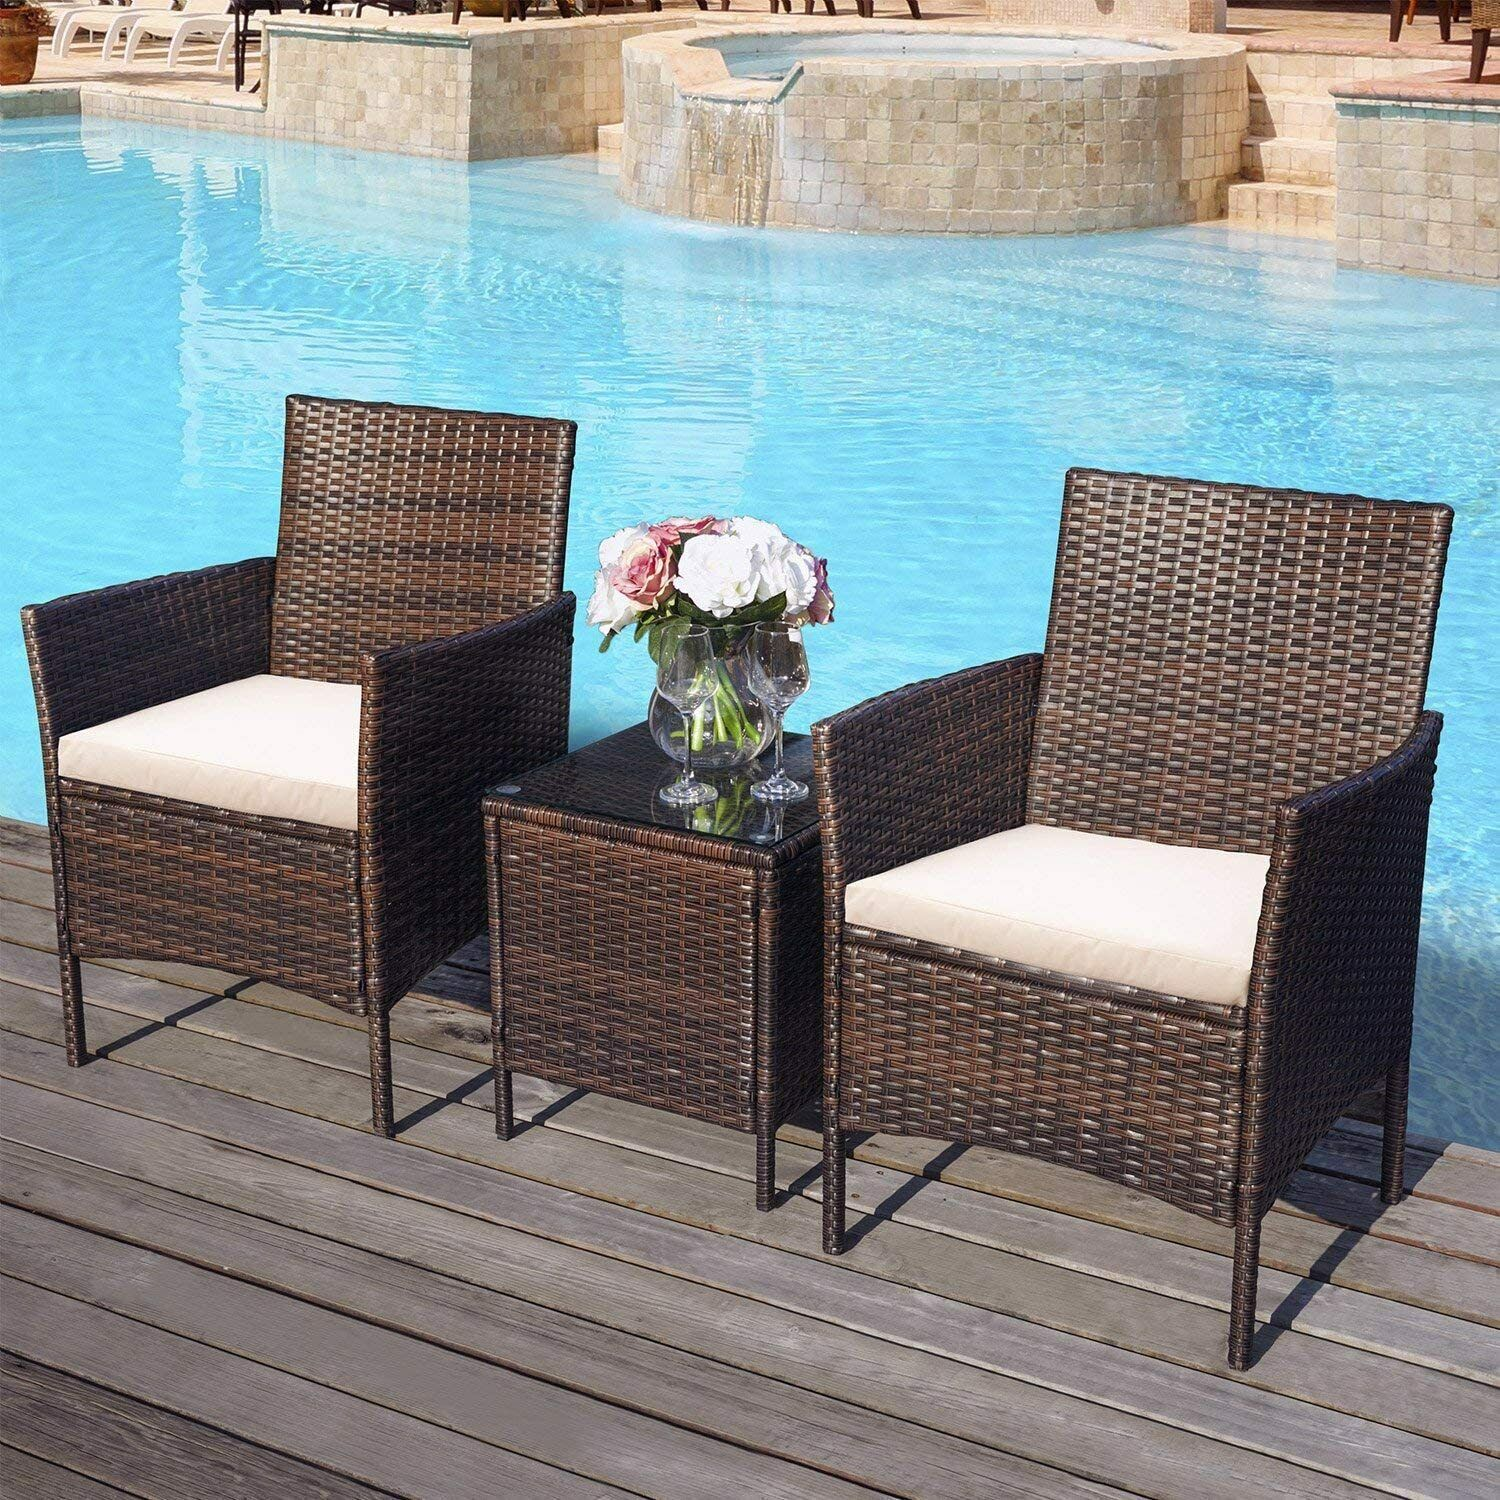 Garden Furniture - Garden Furniture 2 Seater Rattan Sofa 3Pcs Patio Table Set Cushions Love Seat